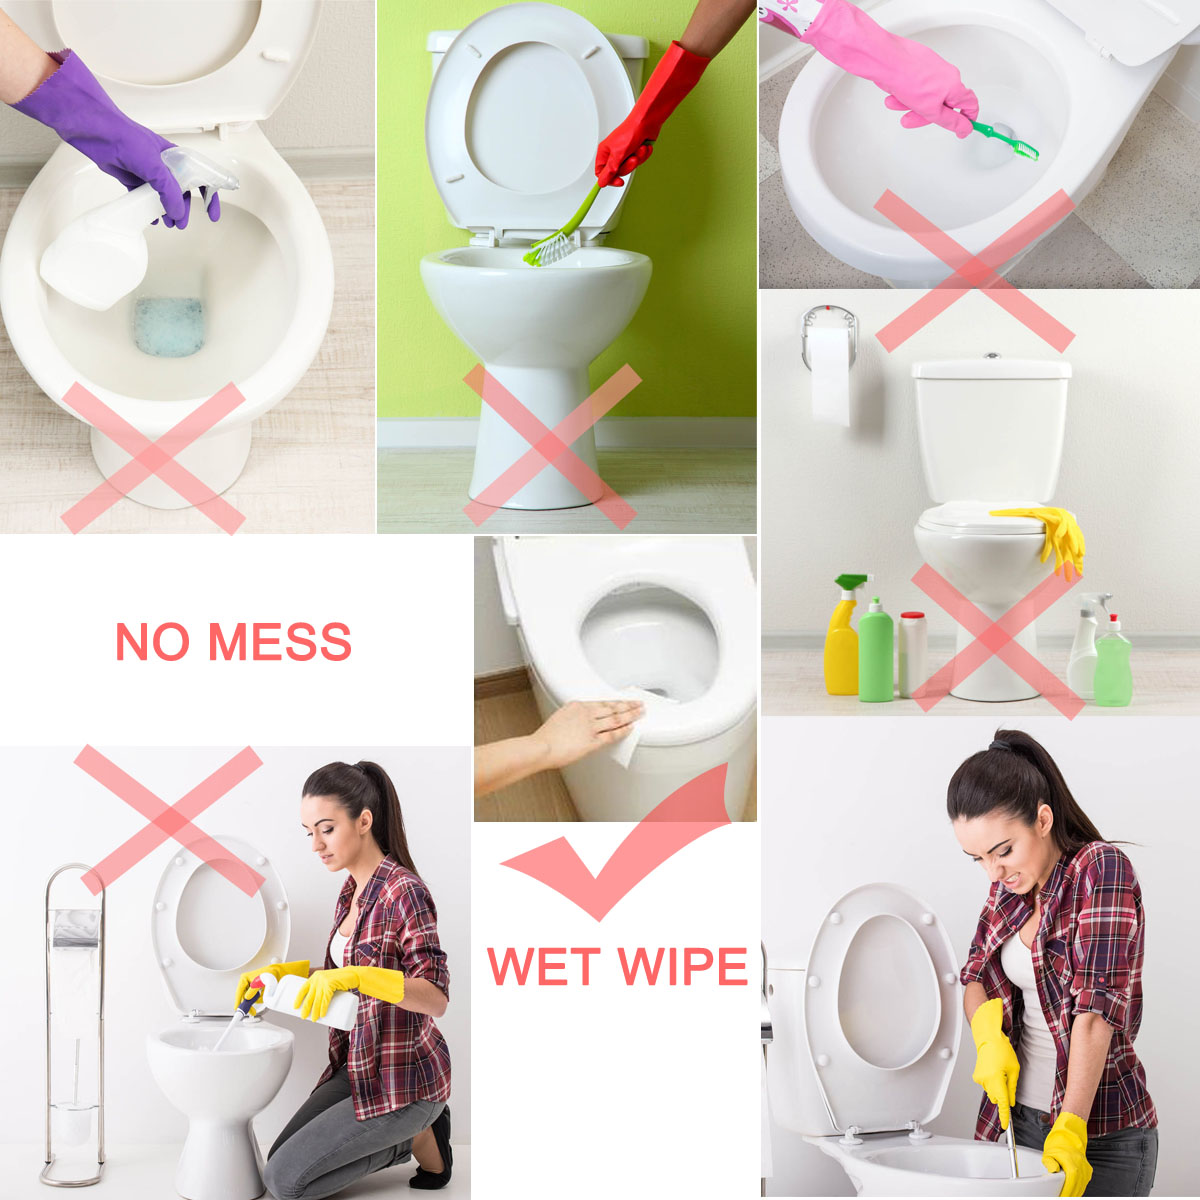 Cleaning and antibacterial wet wipes for toilet